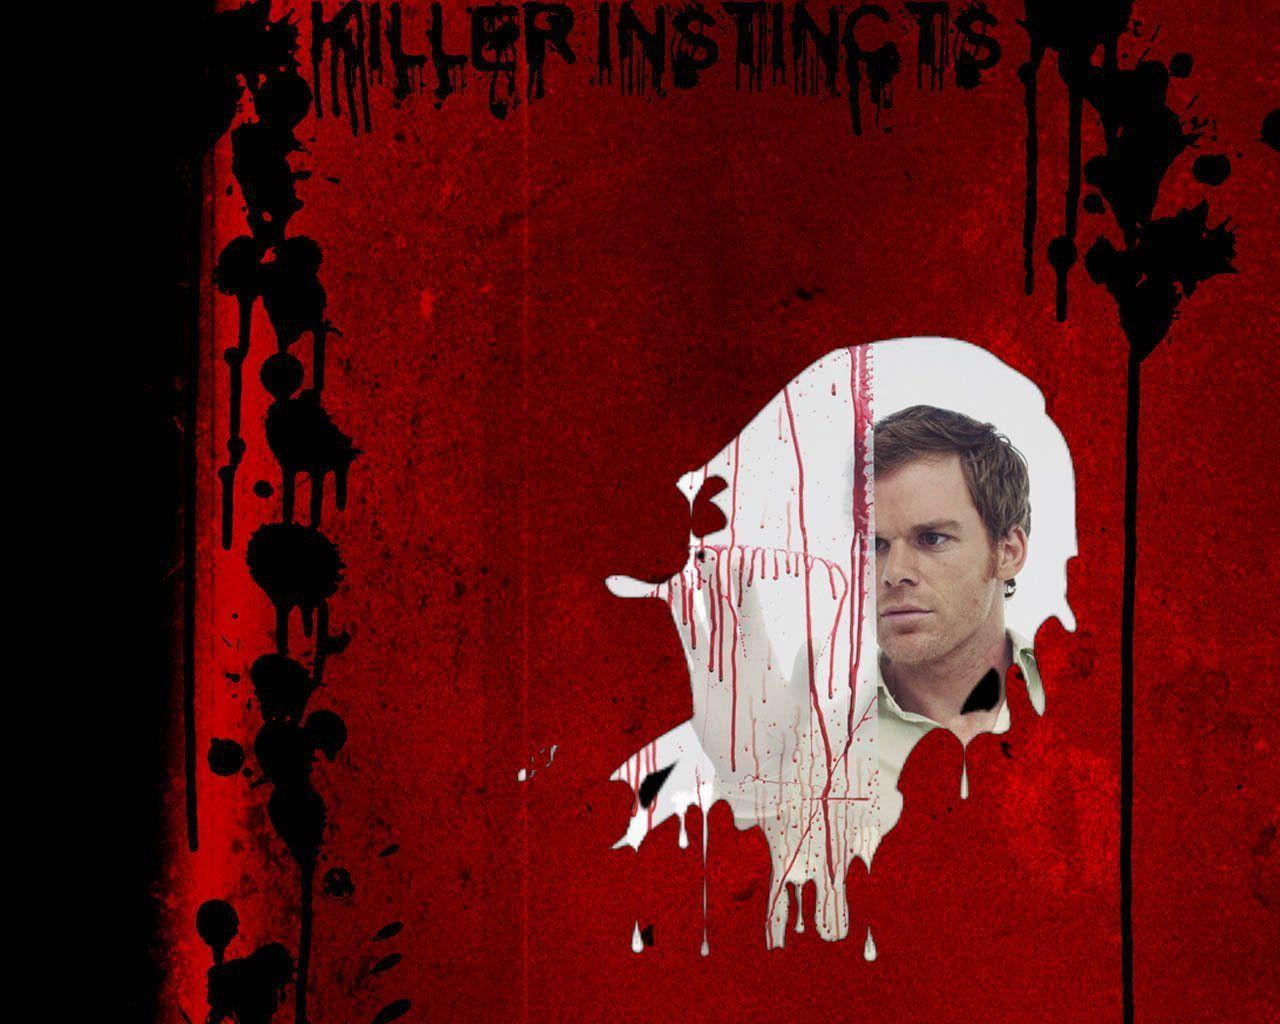 Dexter Wallpaper - Michael C. Hall Wallpaper (348053) - Fanpop